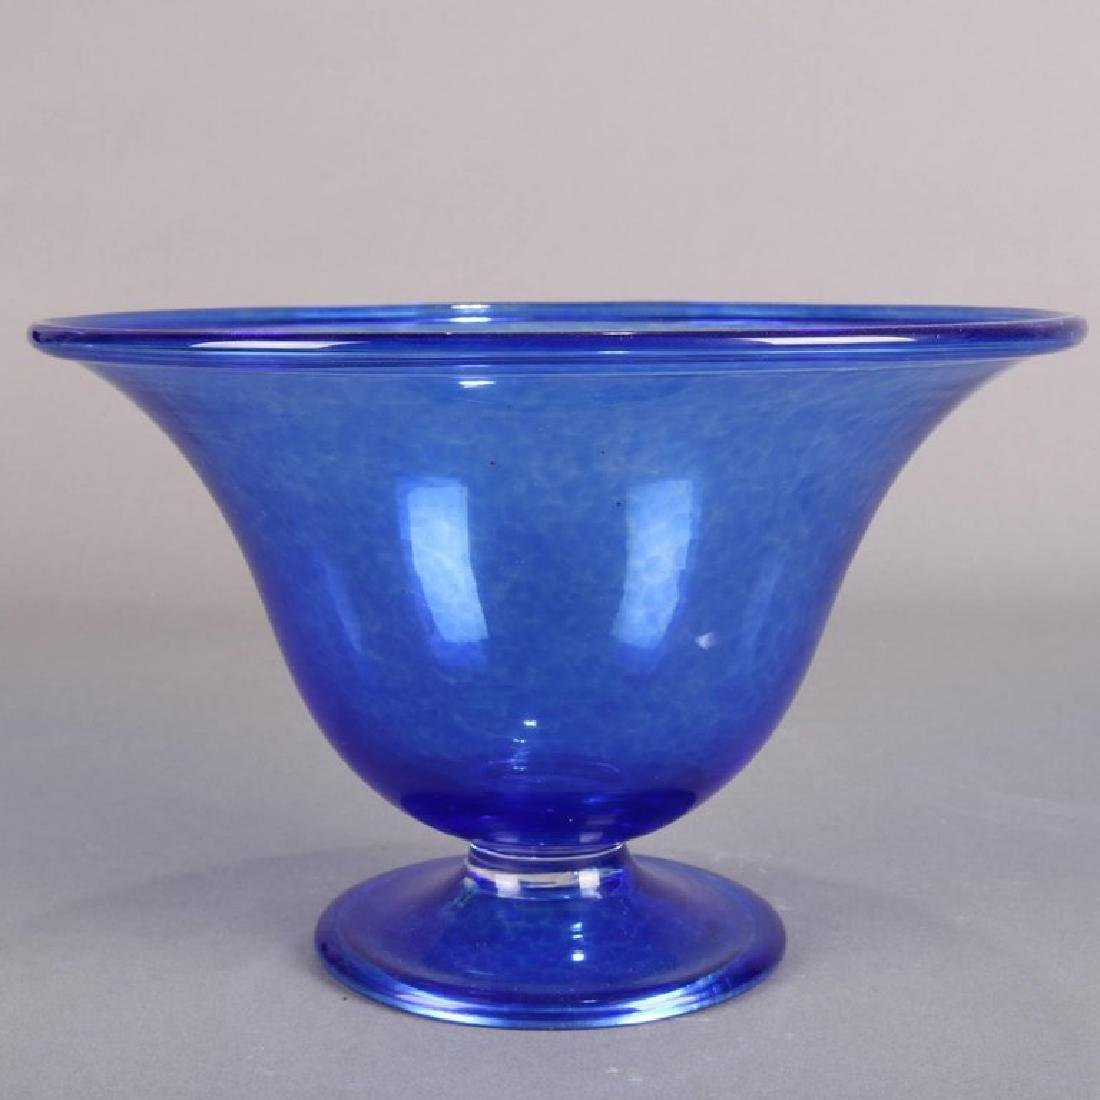 Steuben's Corning Museum of Glass Cobalt Blown Compote - 4